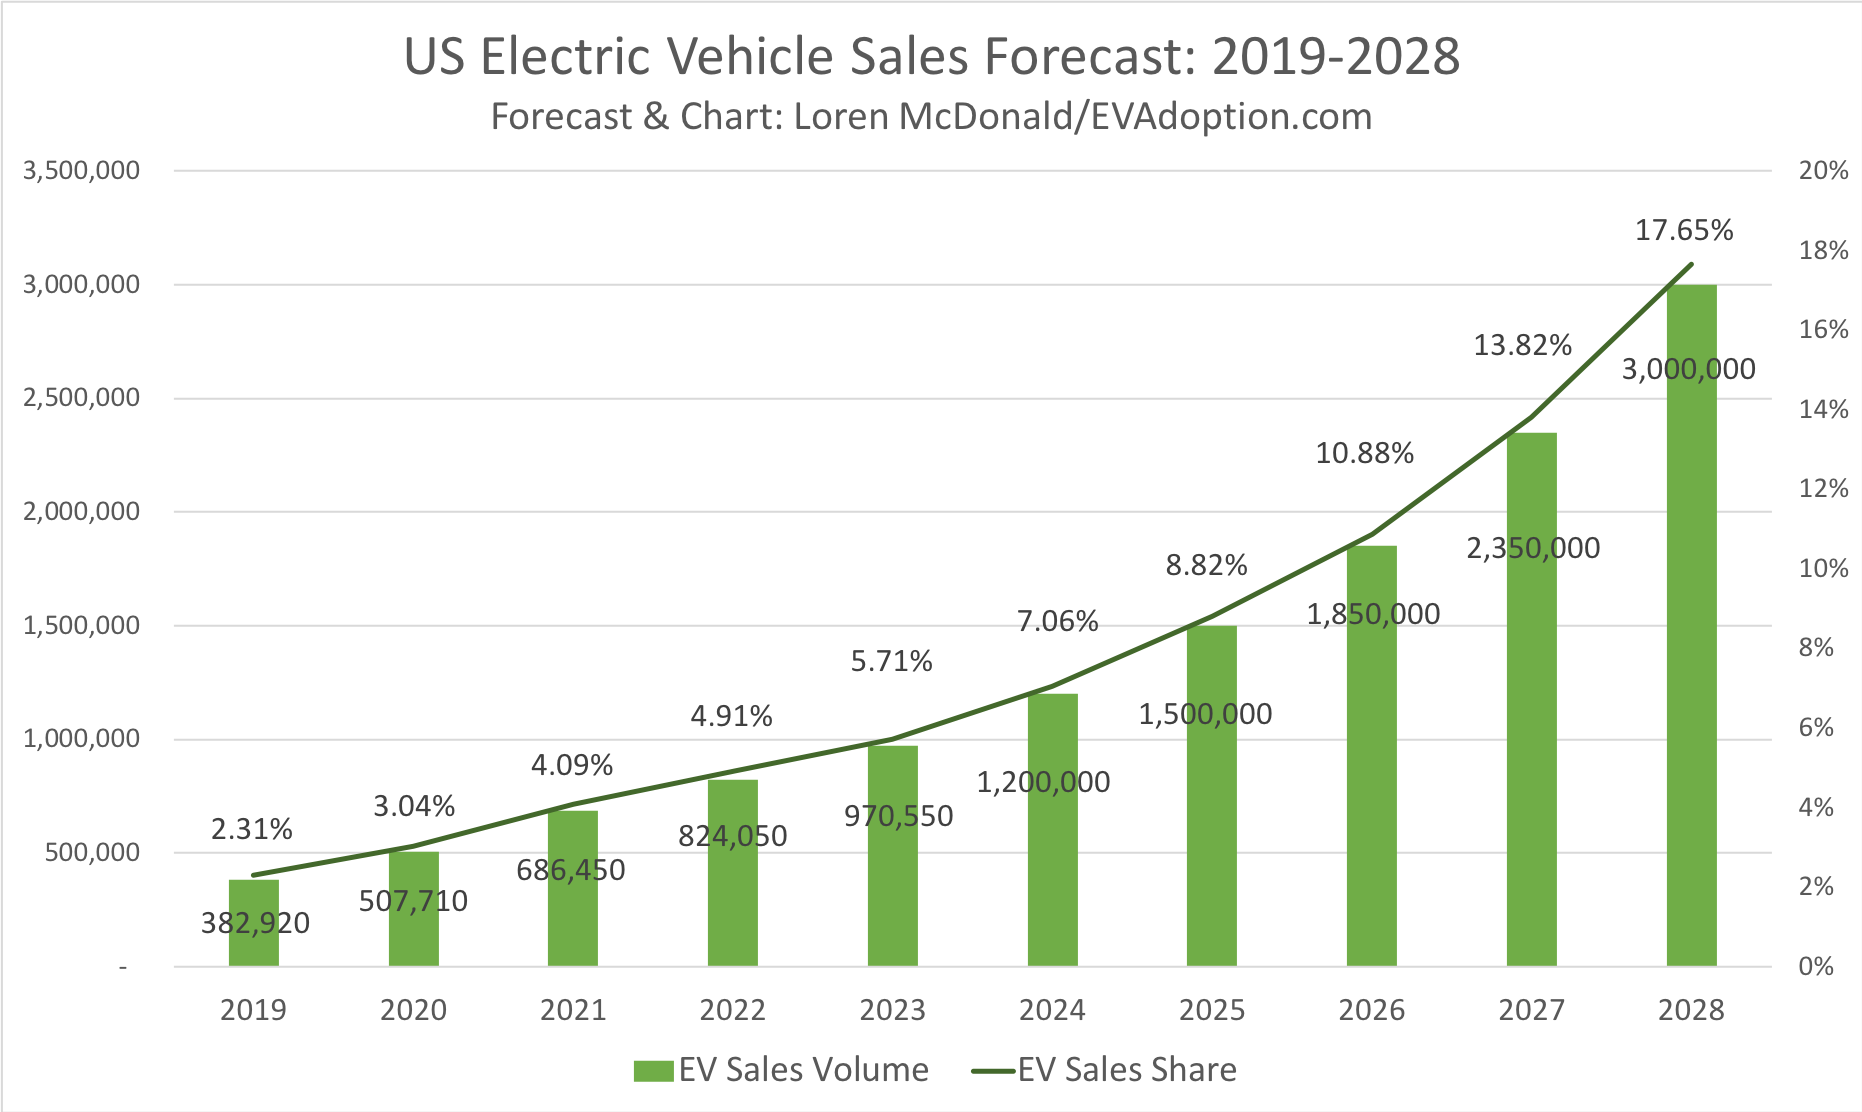 EV Adoption Forecast of electric vehicle sales, reaching 3 million new EV cars by 2028